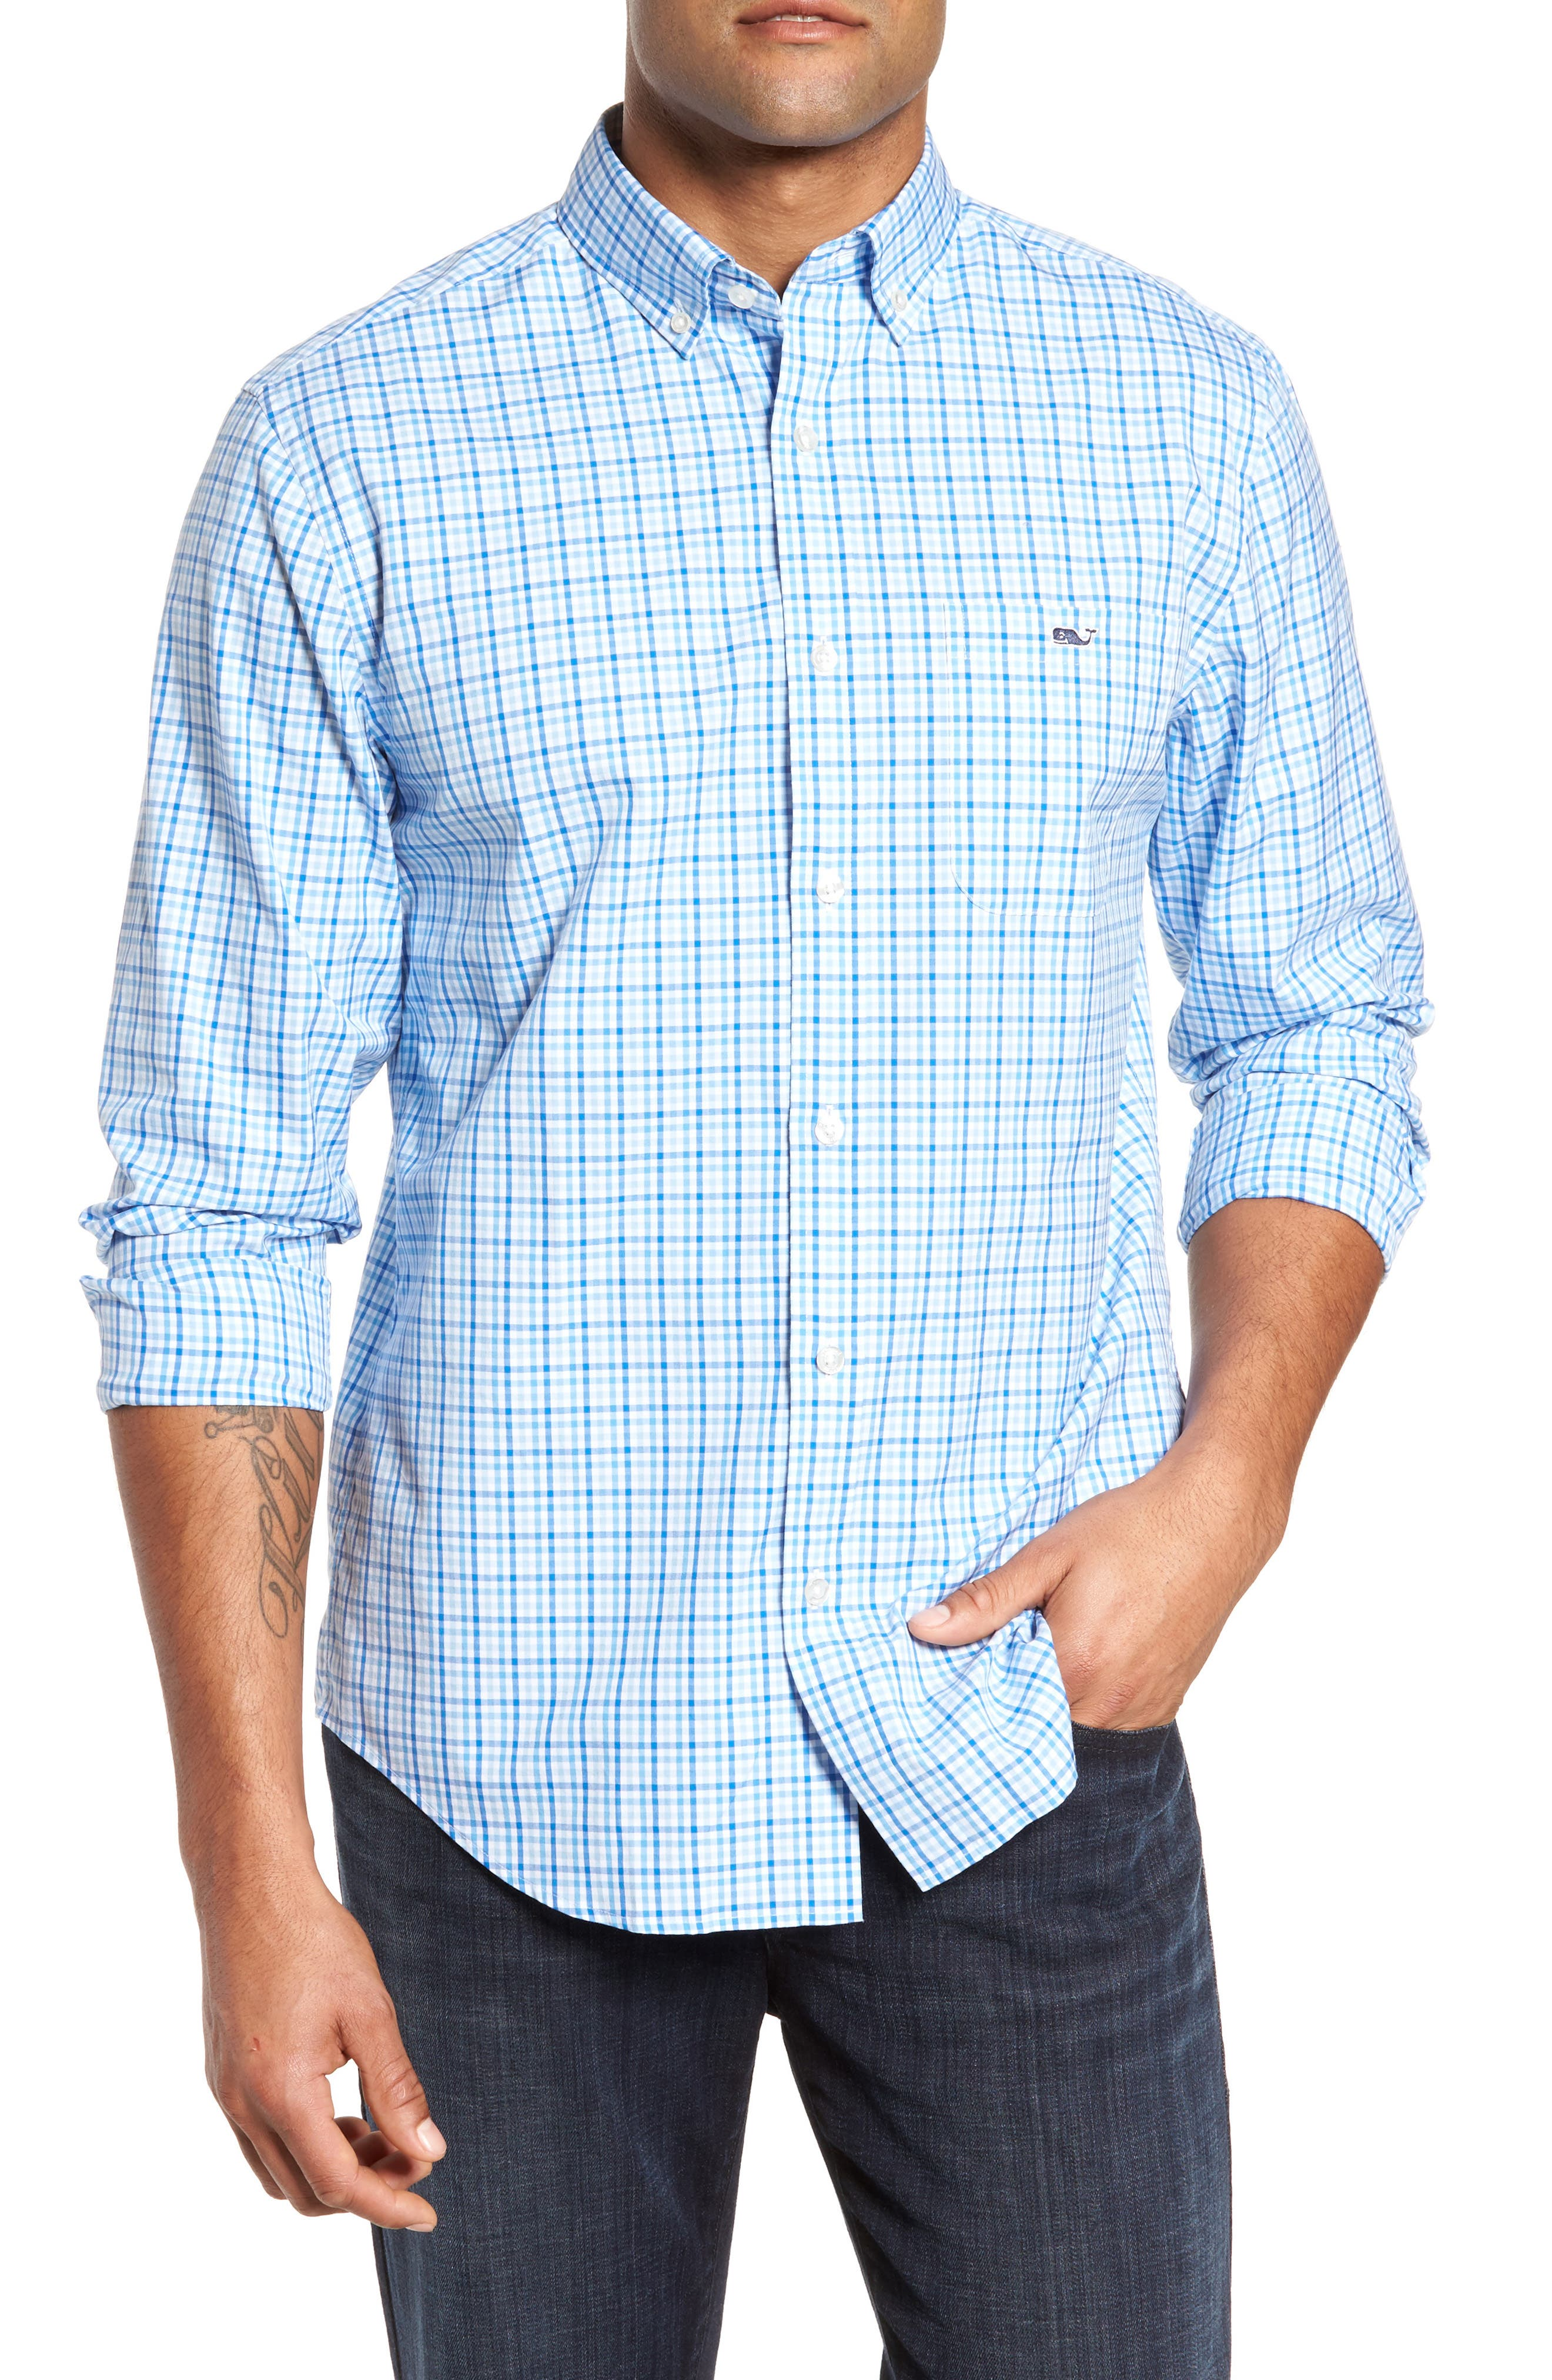 Munroe Tucker Classic Fit Gingham Sport Shirt,                             Main thumbnail 1, color,                             Jake Blue